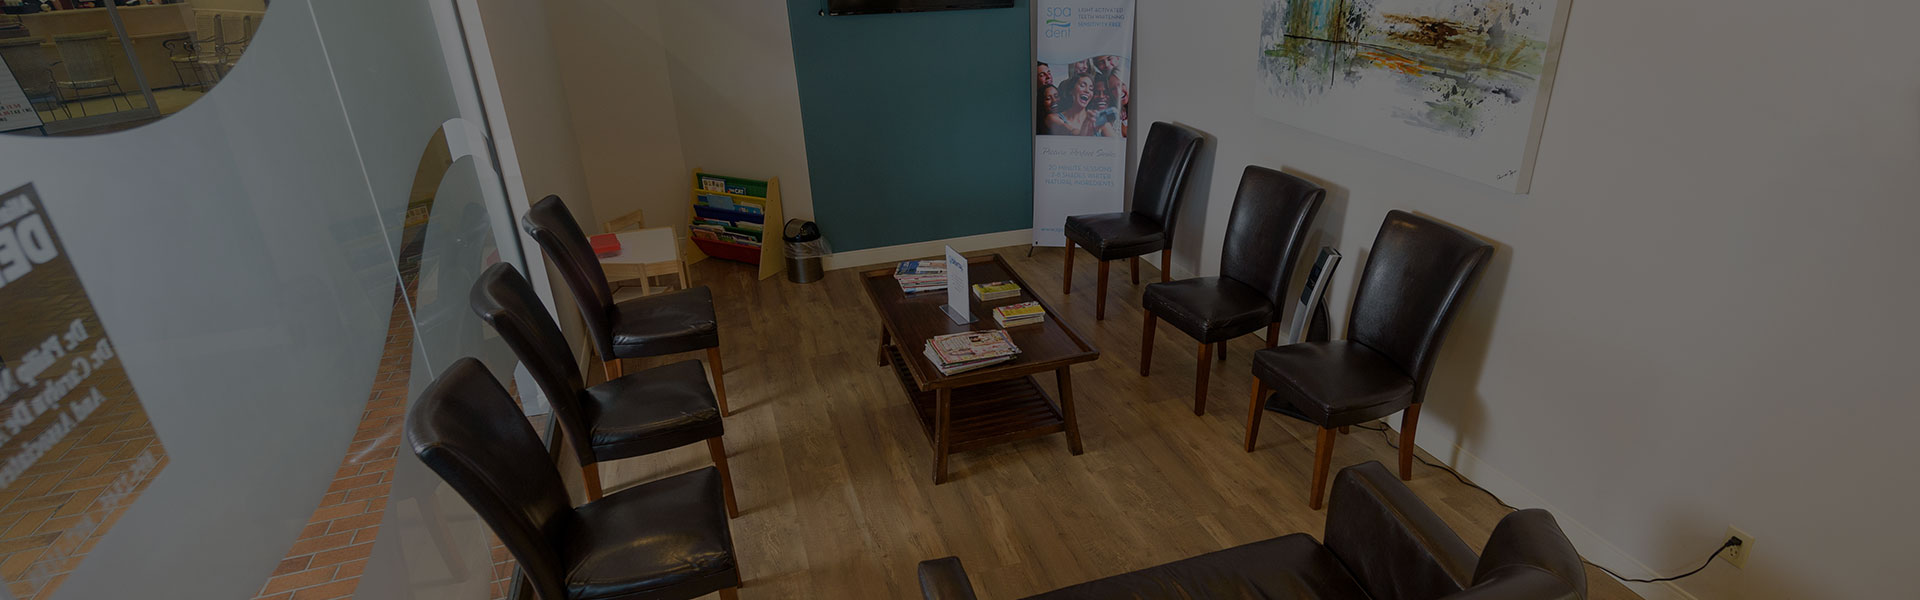 waiting area alliance dental truro